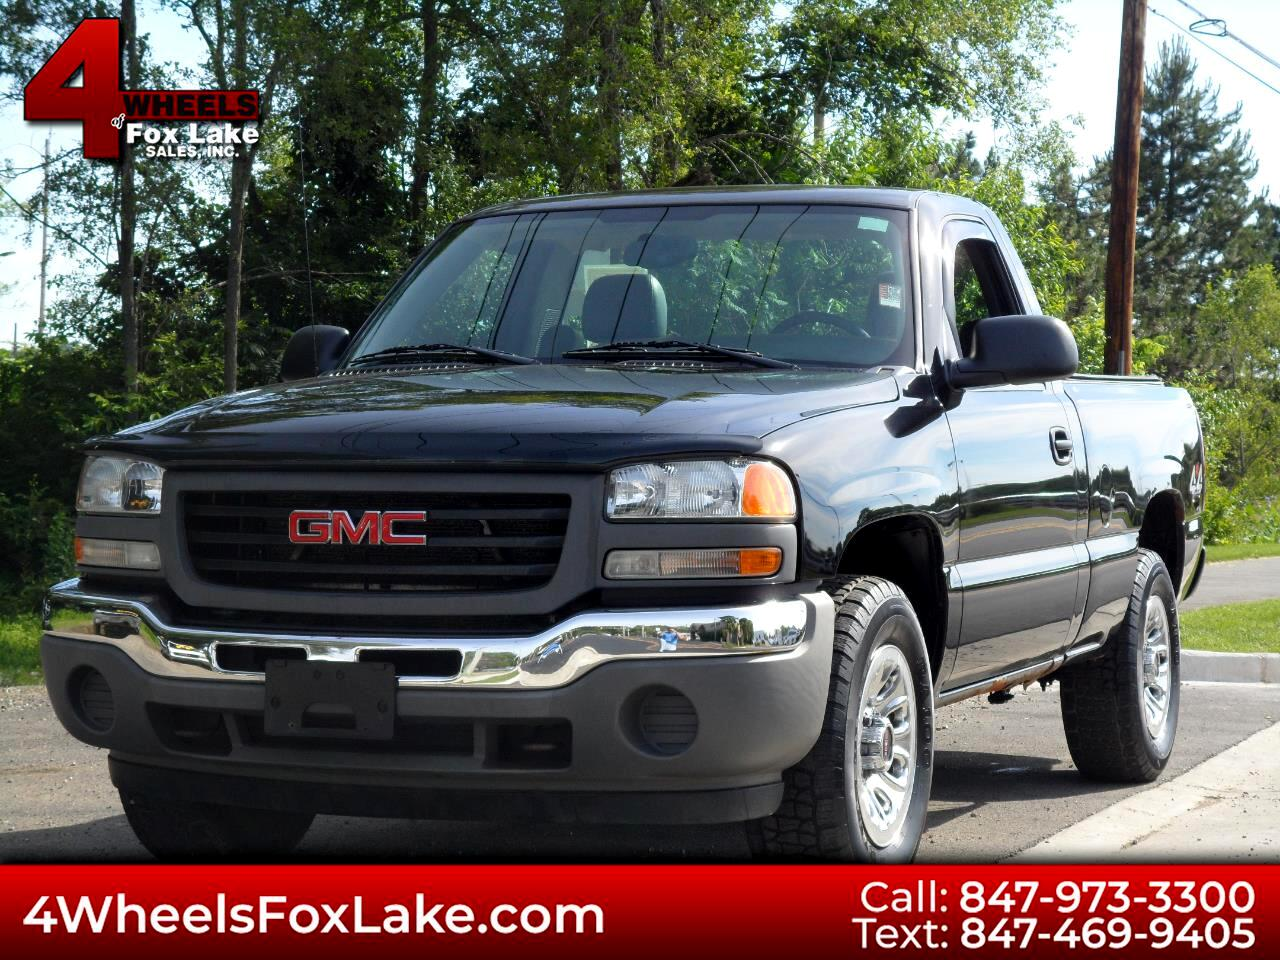 2005 GMC Sierra 1500 Short Bed 4WD